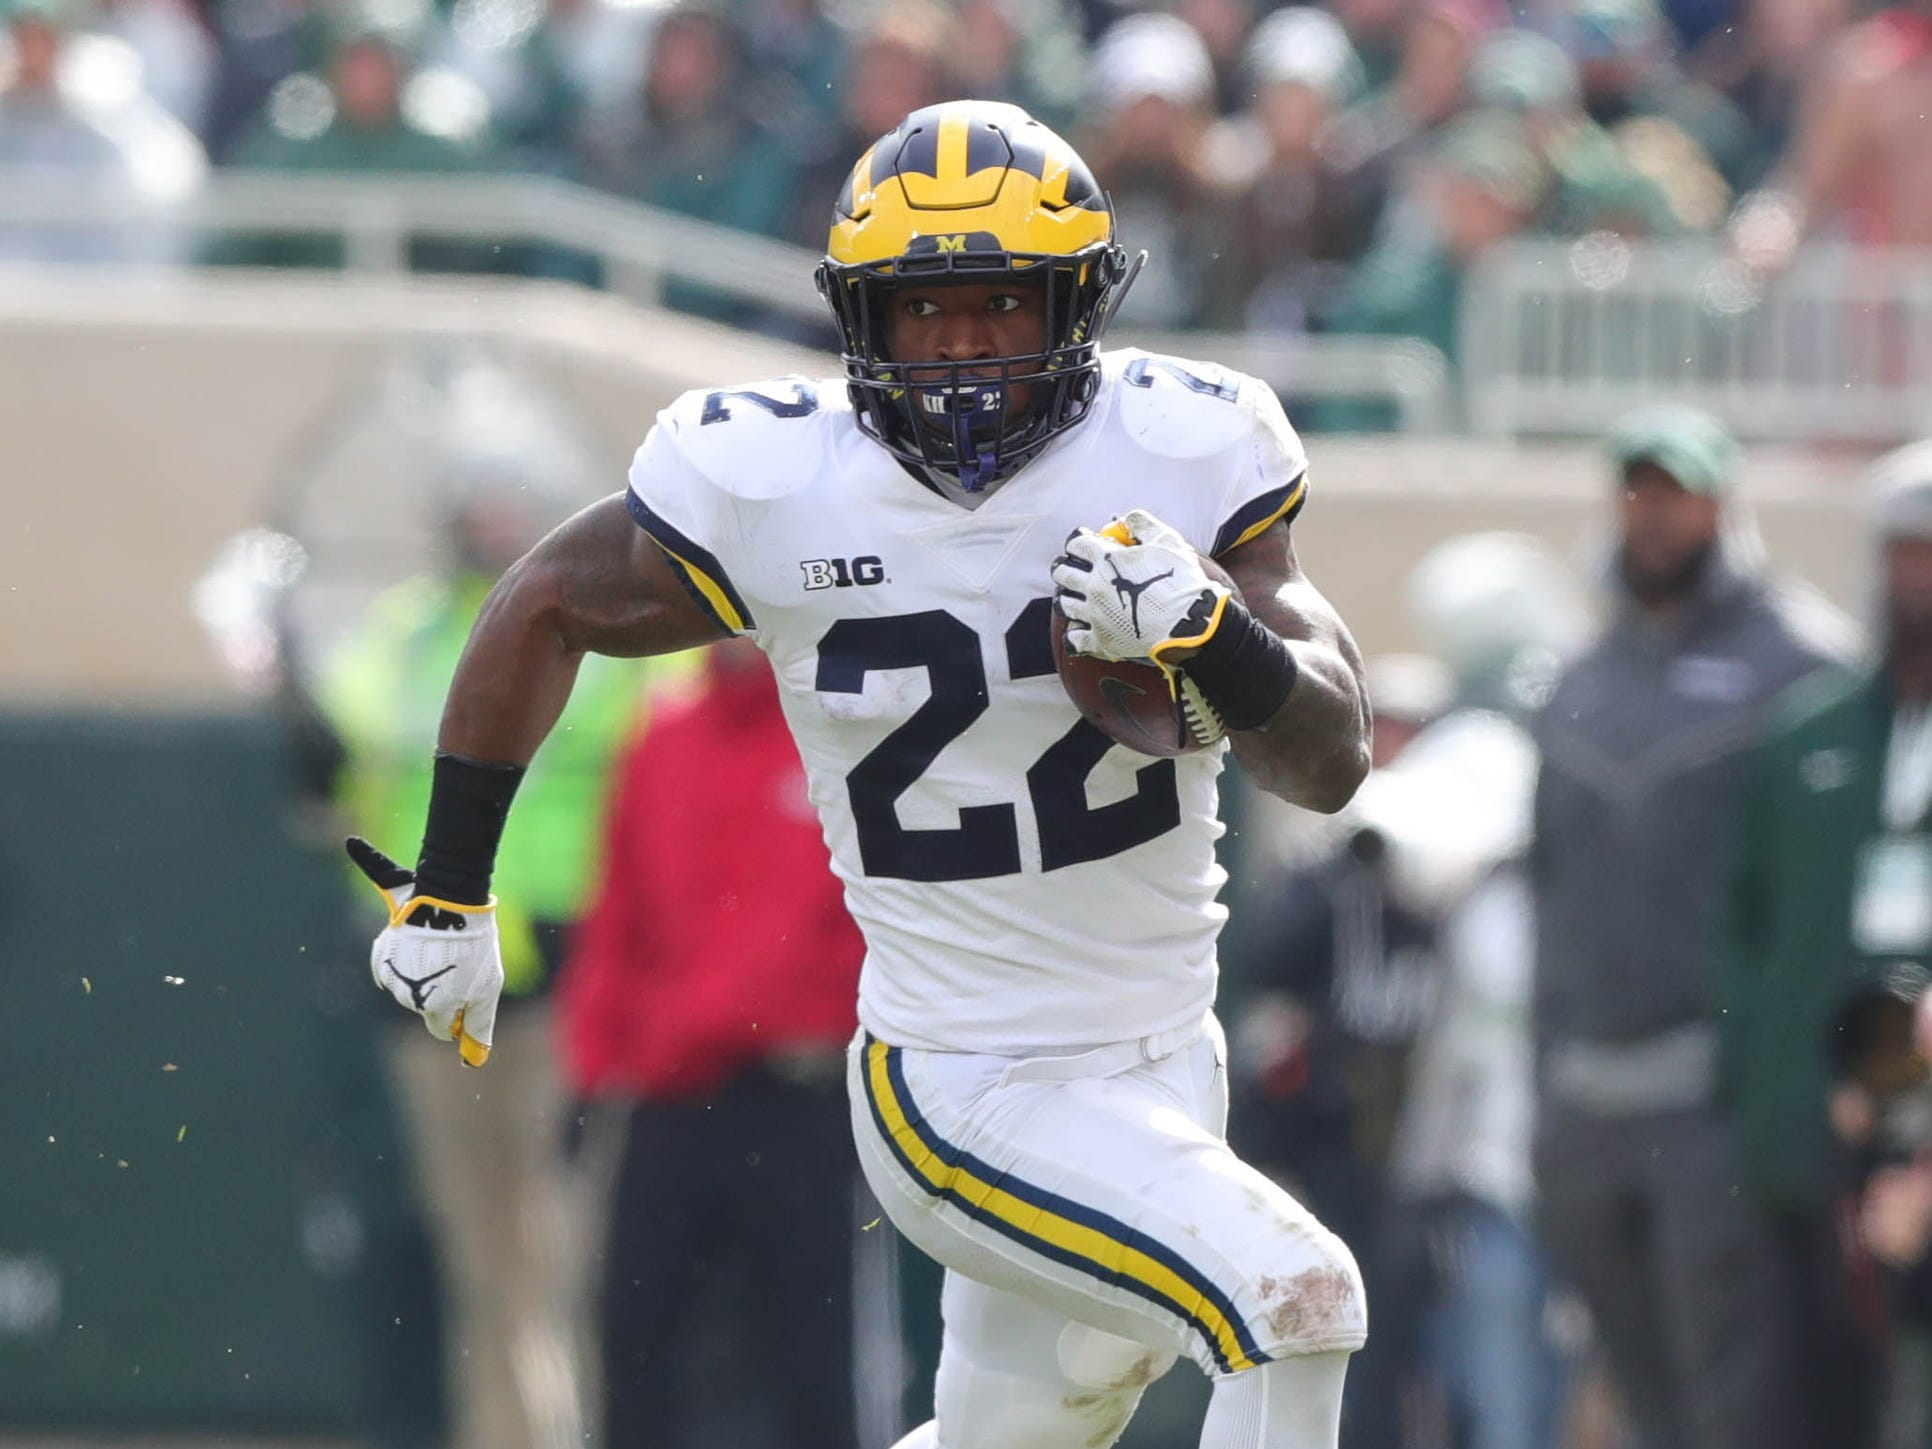 Michigan running back Karan Higdon runs for a first down against Michigan State during the first half in Spartan Stadium on Saturday, Oct. 20, 2018.